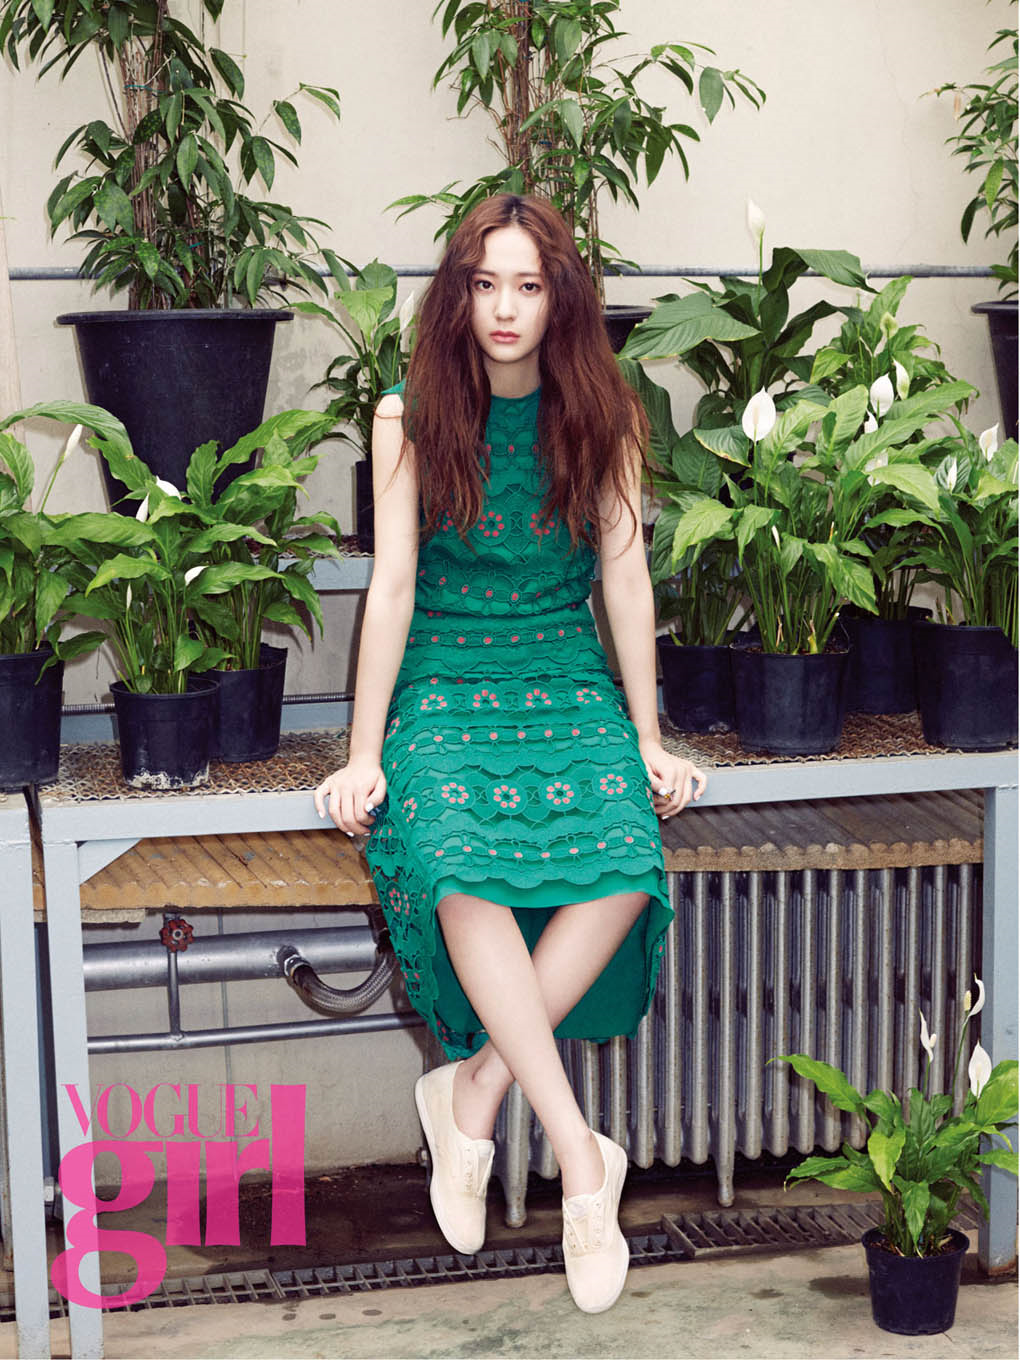 fx-Krystal-Vogue-Girl-Korea-May-Look-wallpaper-wp3005972